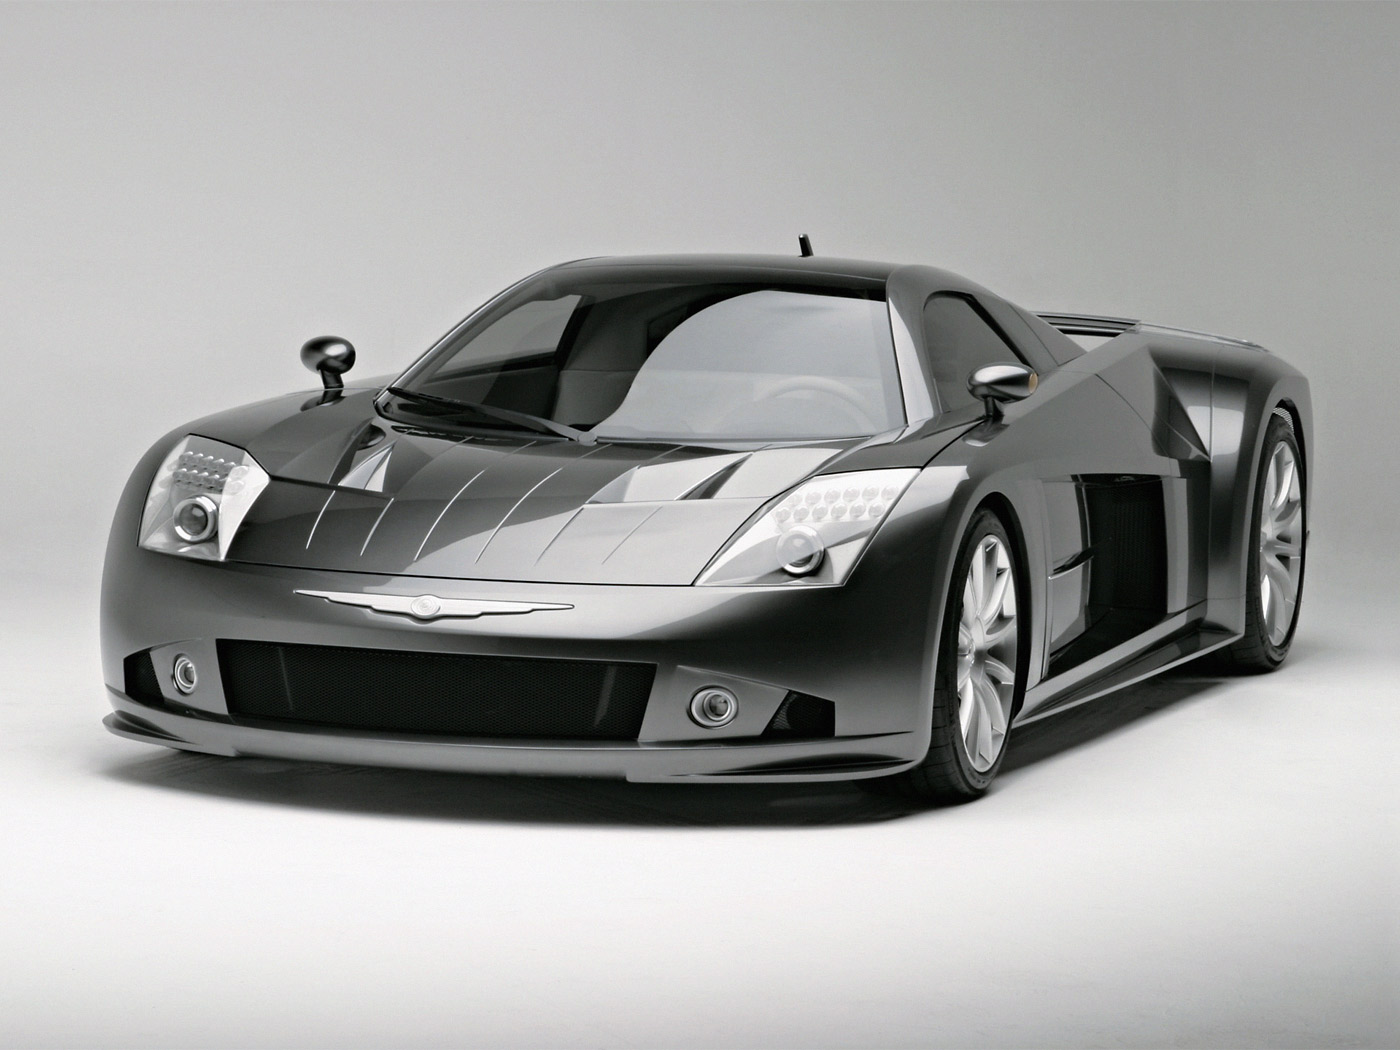 super car images Cars Wallpapers And Pictures car imagescar pics 1400x1050